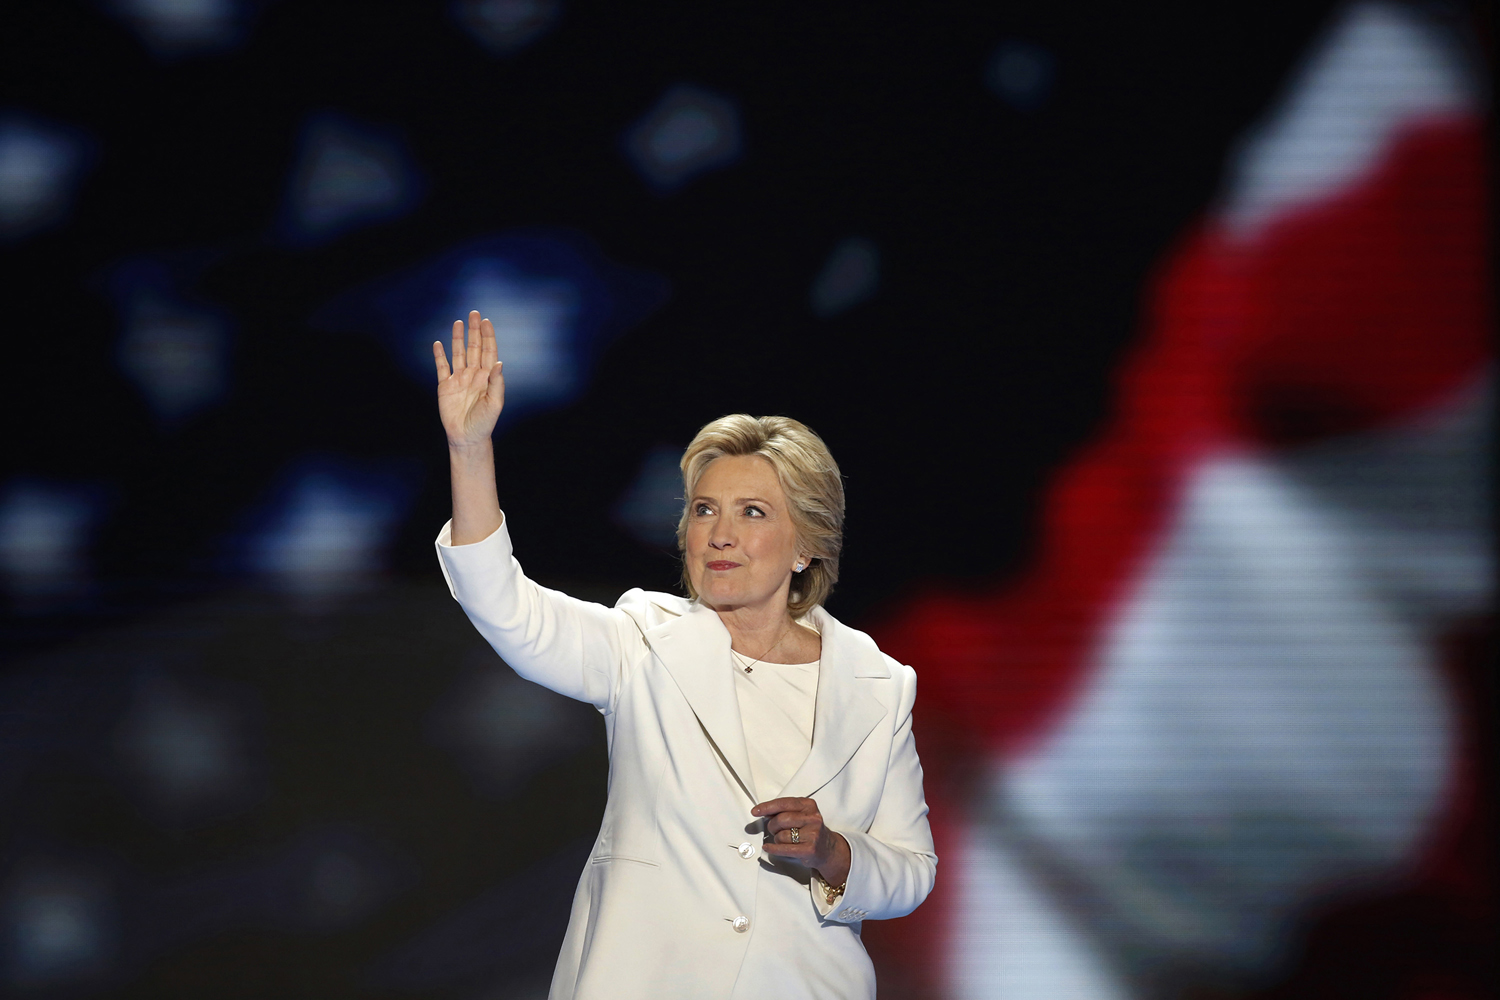 Hillary Clinton became the first woman to win the nomination for president from a major party in the United States on the final night of the Democratic National Convention on July 28, 2016. The State Board of Education in Texas voted Friday to remove Hillary Clinton and Helen Keller, as well as other historical figures, from the curriculum.